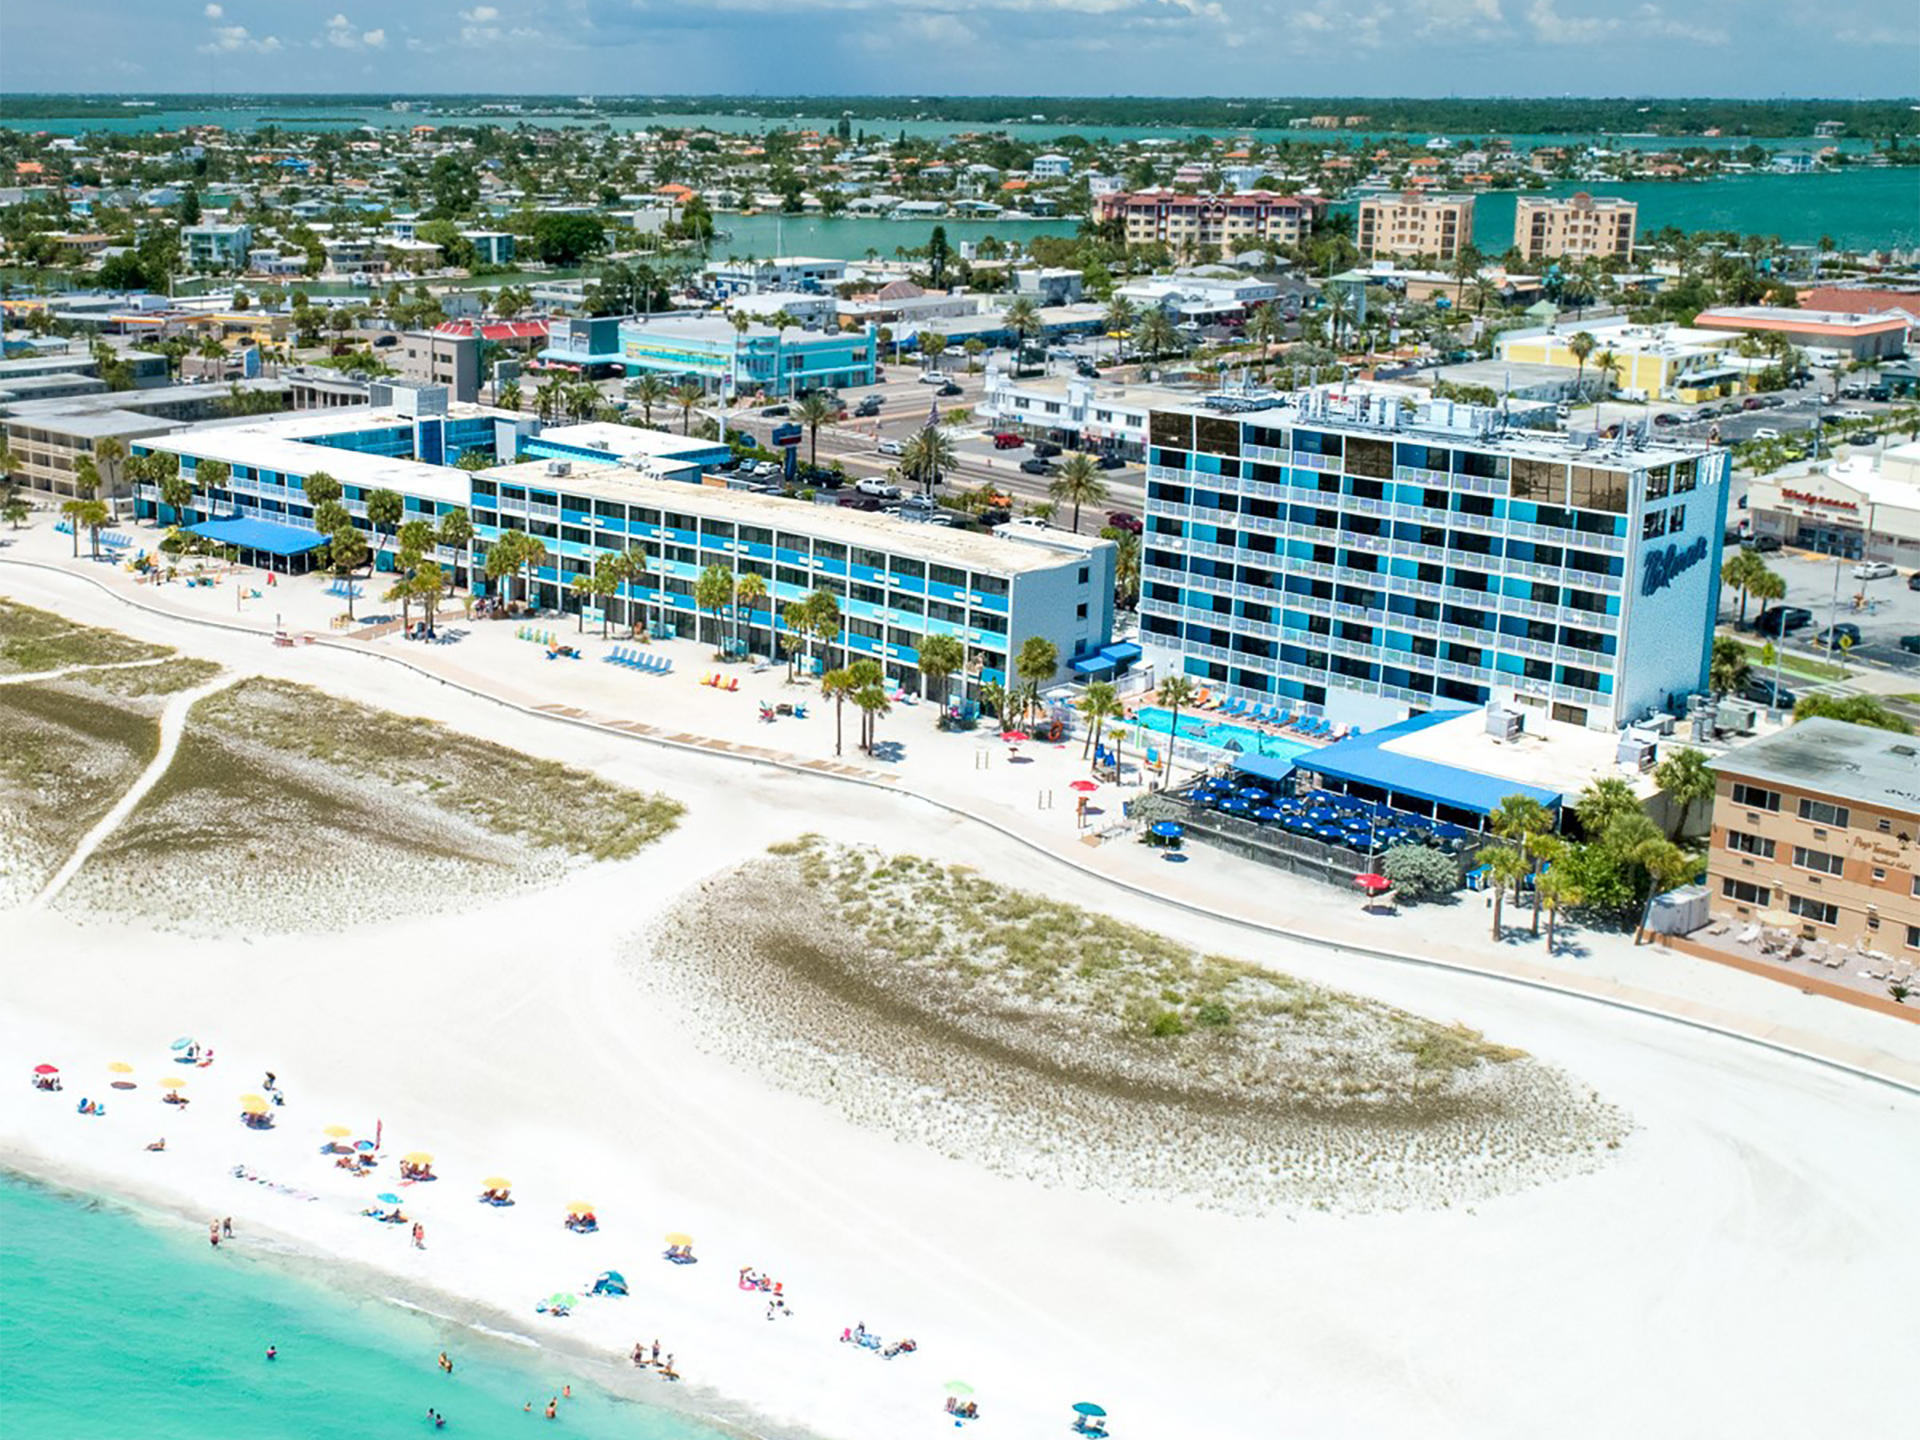 aerial view of a beachfront hotel